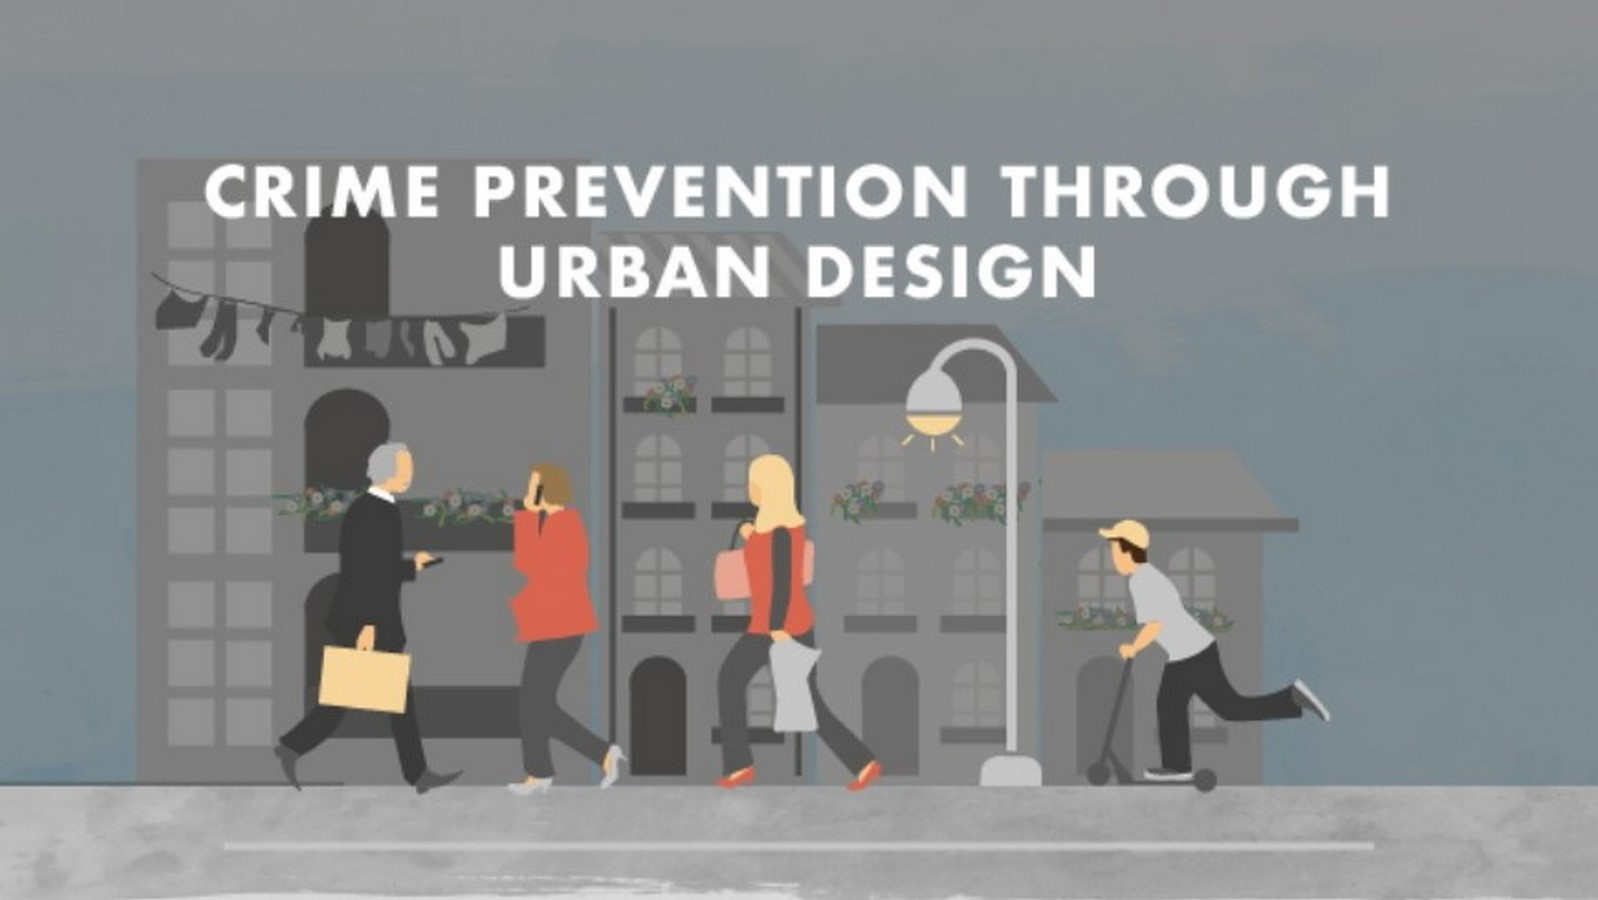 How can architecture make cities safer for women and children? - Sheet1